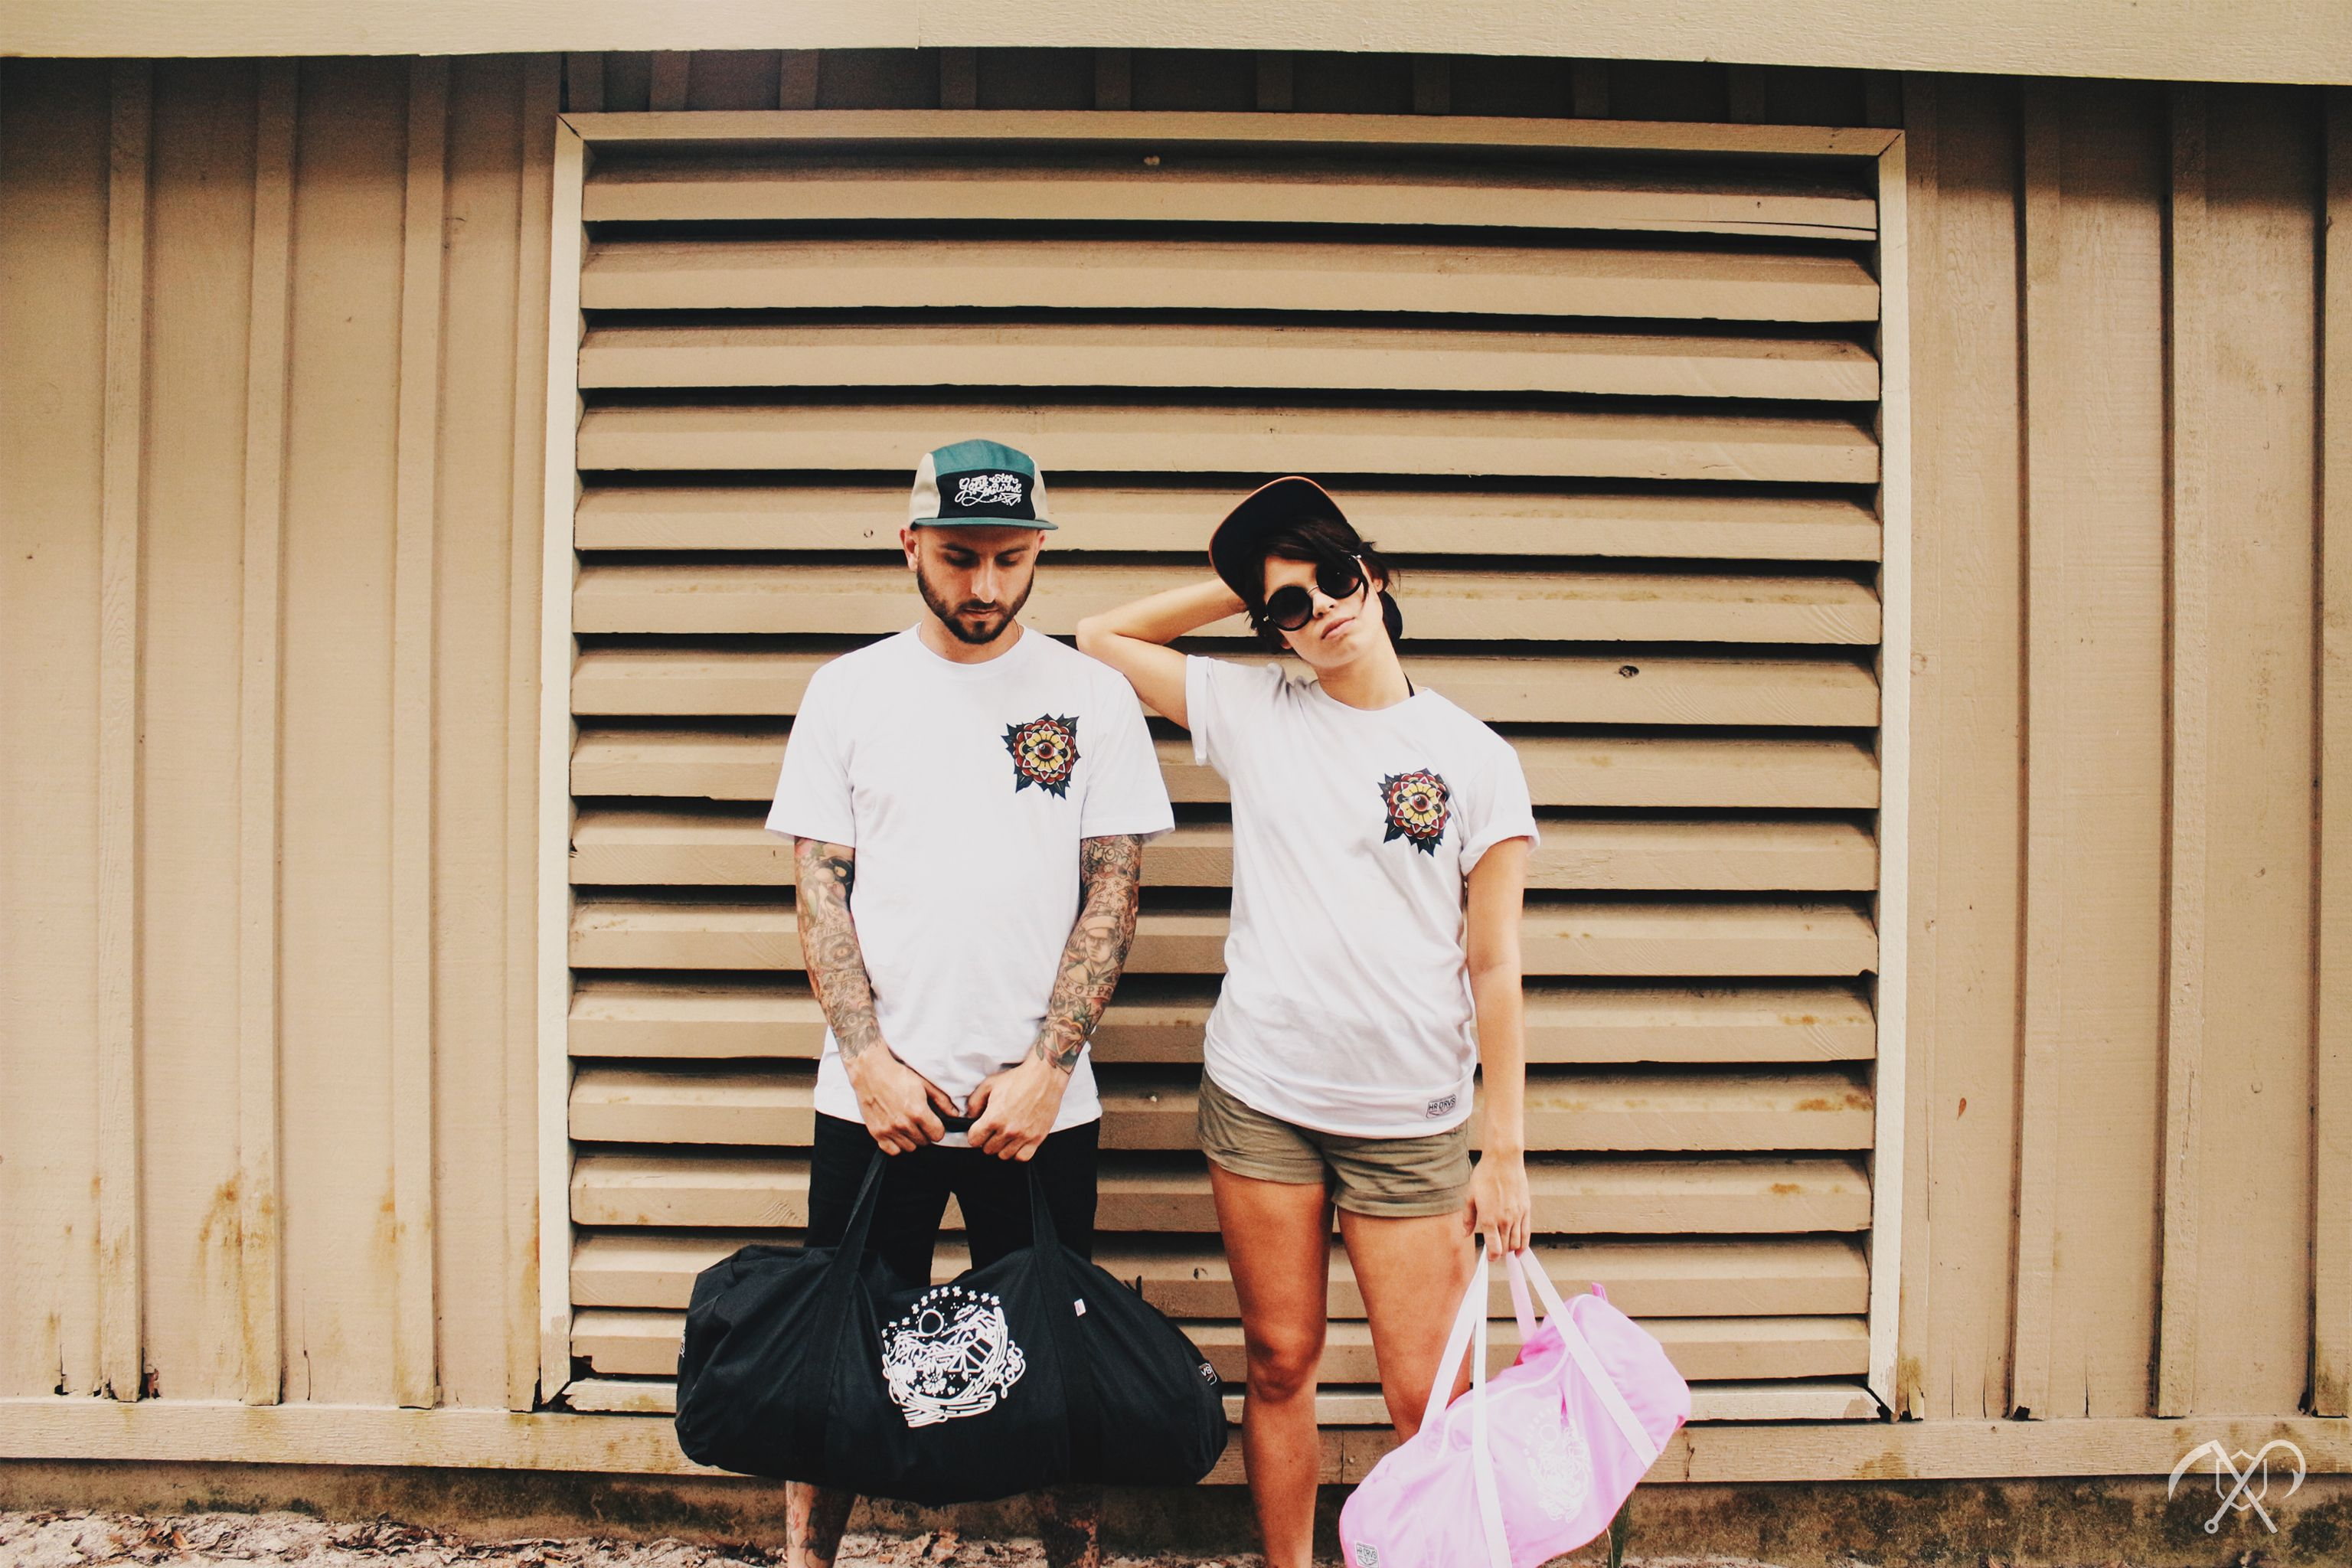 Headed somewhere this Summer? Gear up and look sharp!  Adventure Is Out There // www.HRDRVS.com  #hrdrvs #tattoos #adventure #exploration #explore #couples